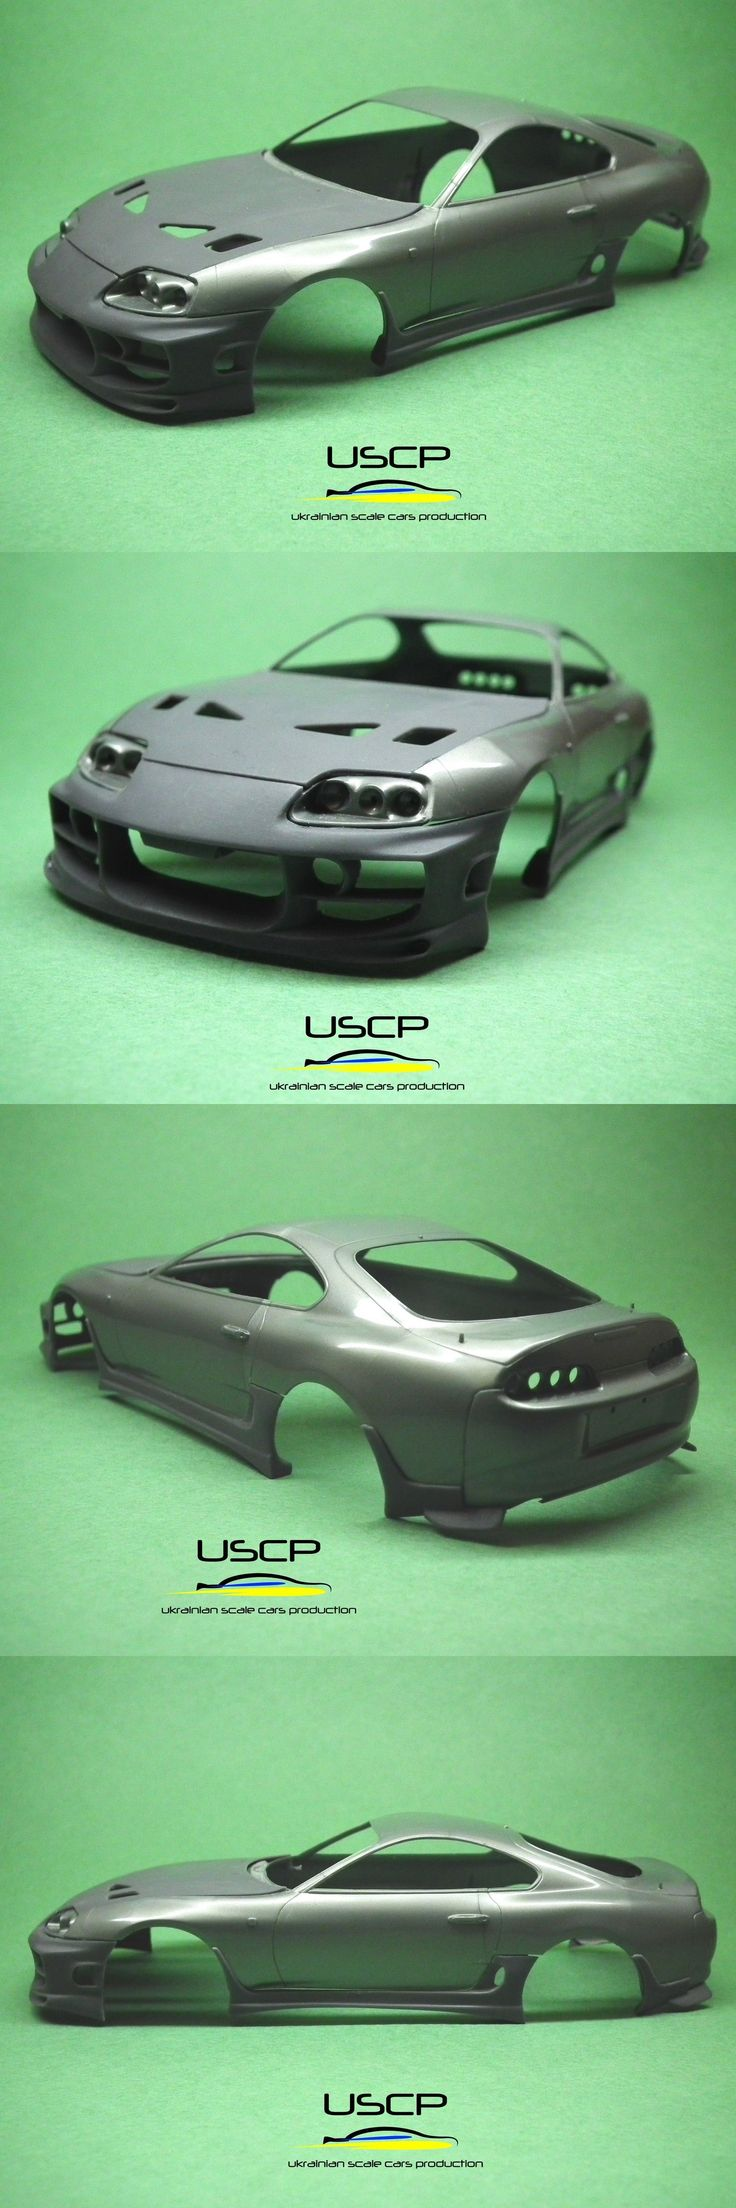 Toyota avanza details spec modified picture bodykit of html 2017 - Parts 166798 1 24 Toyota Supra Bomex Bodykit For Tamiya Buy It Now